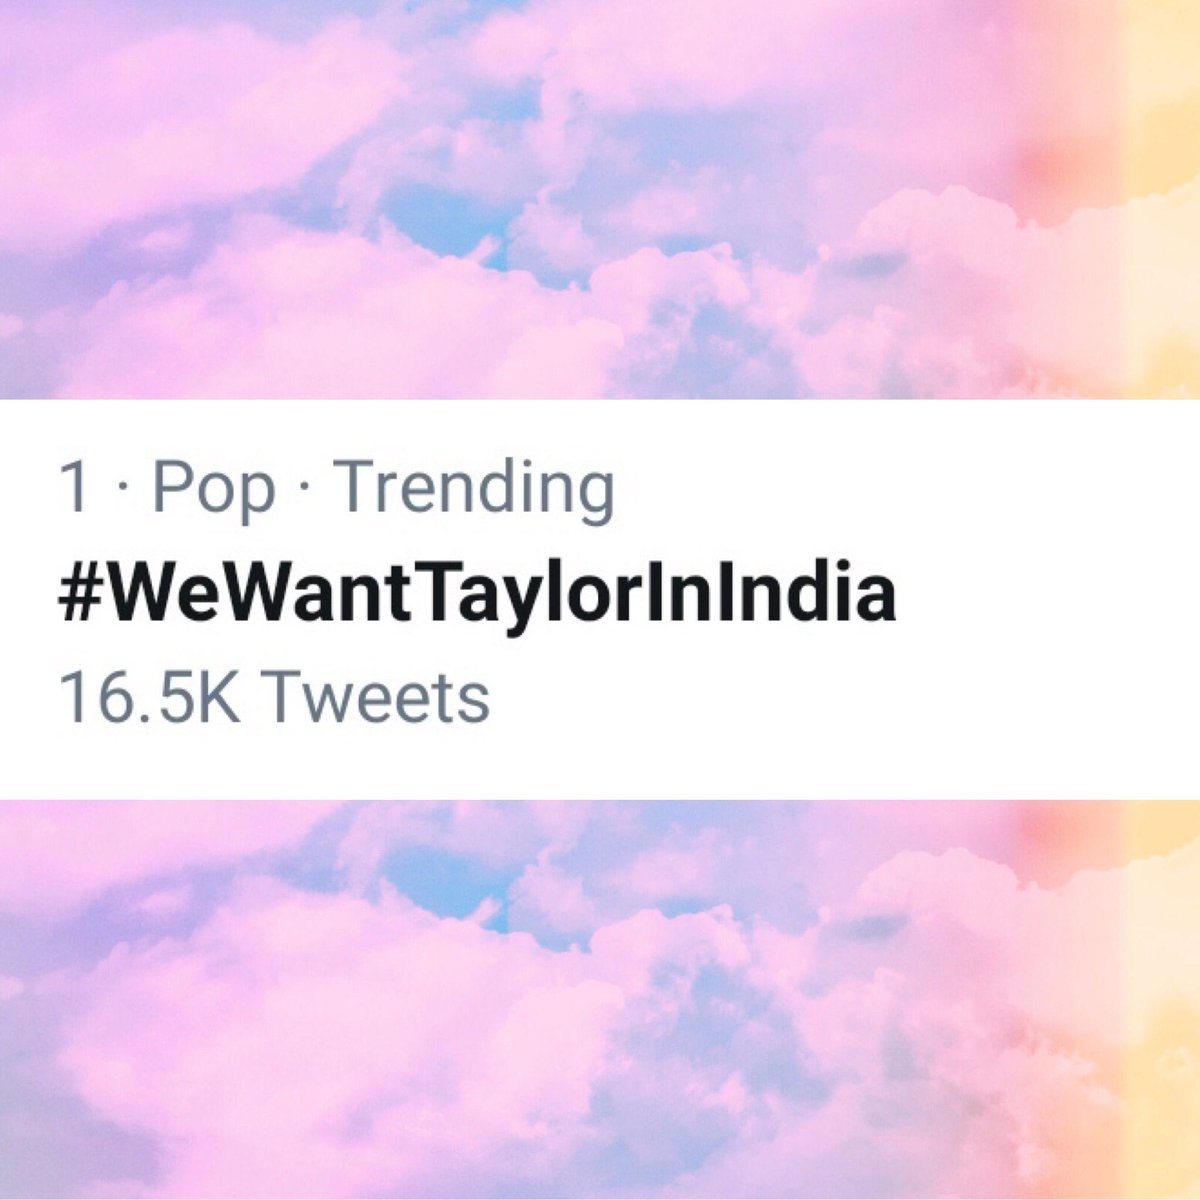 | Taylor Swift fans got #WeWantTaylorInIndia trending at #1 in hopes of getting Taylor to perform live in their country for the very first time  <br>http://pic.twitter.com/cj3SOVbXXT